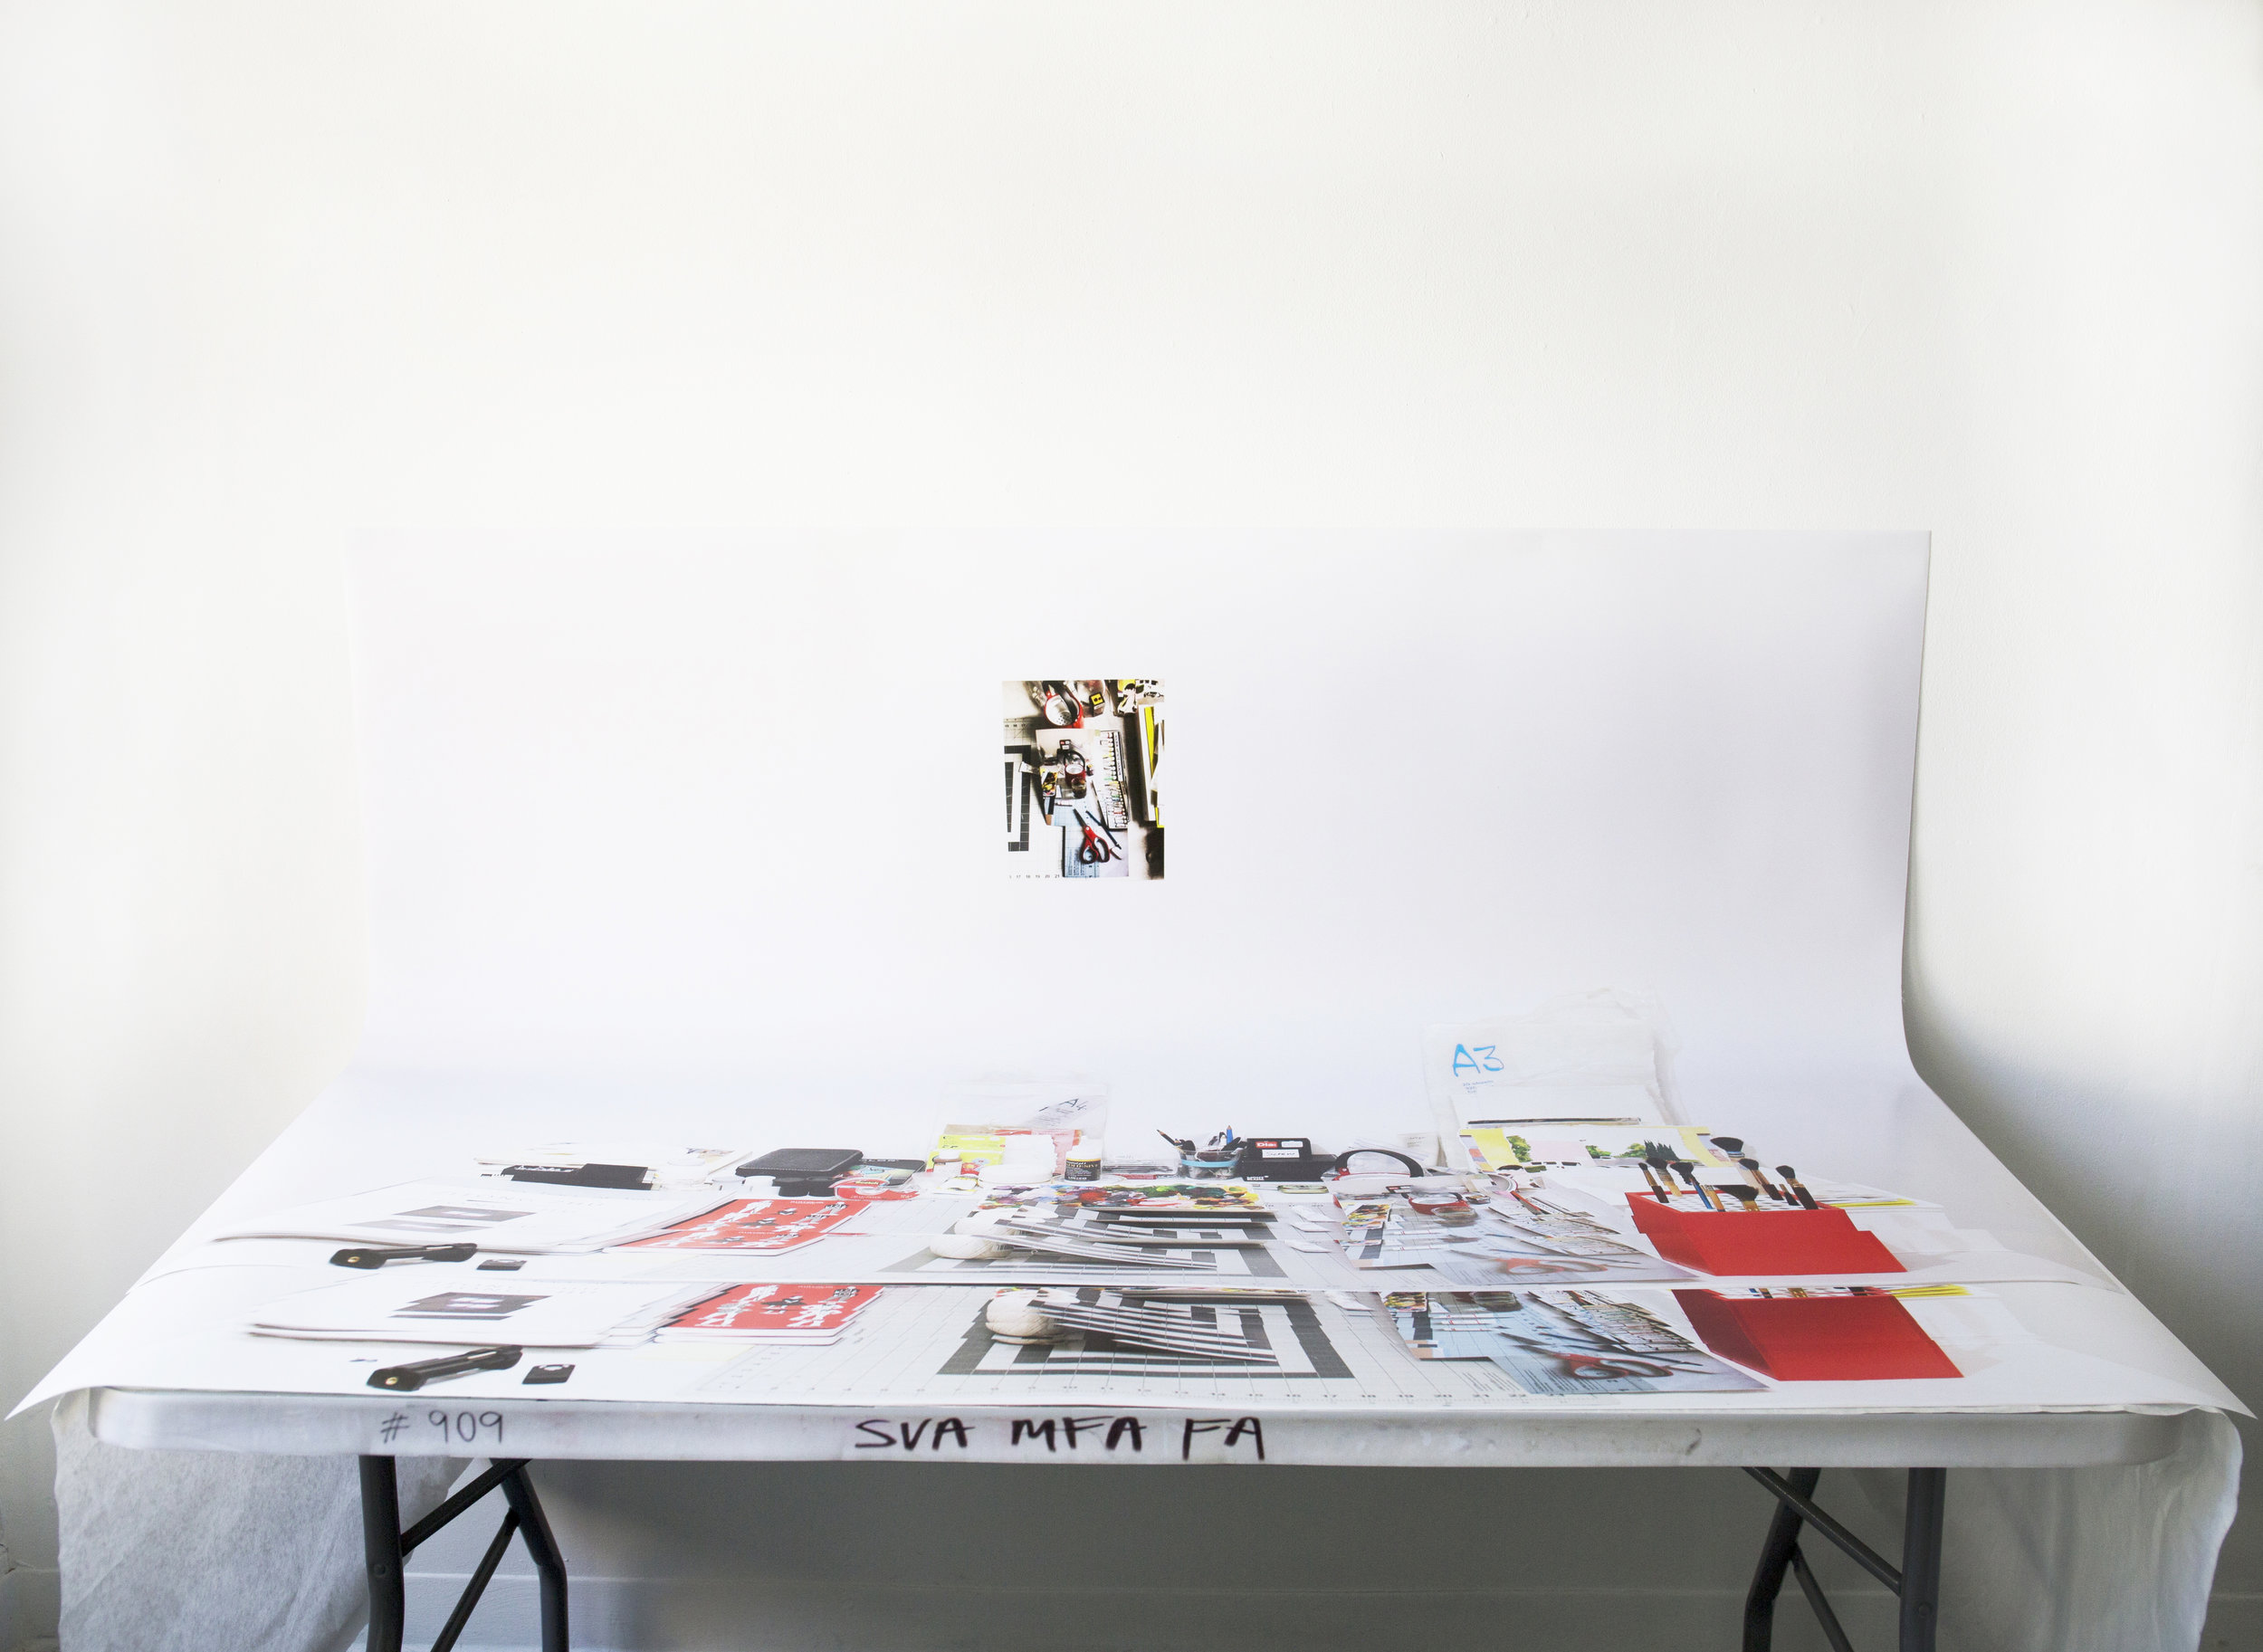 Installation view of Studio Deck 2.0